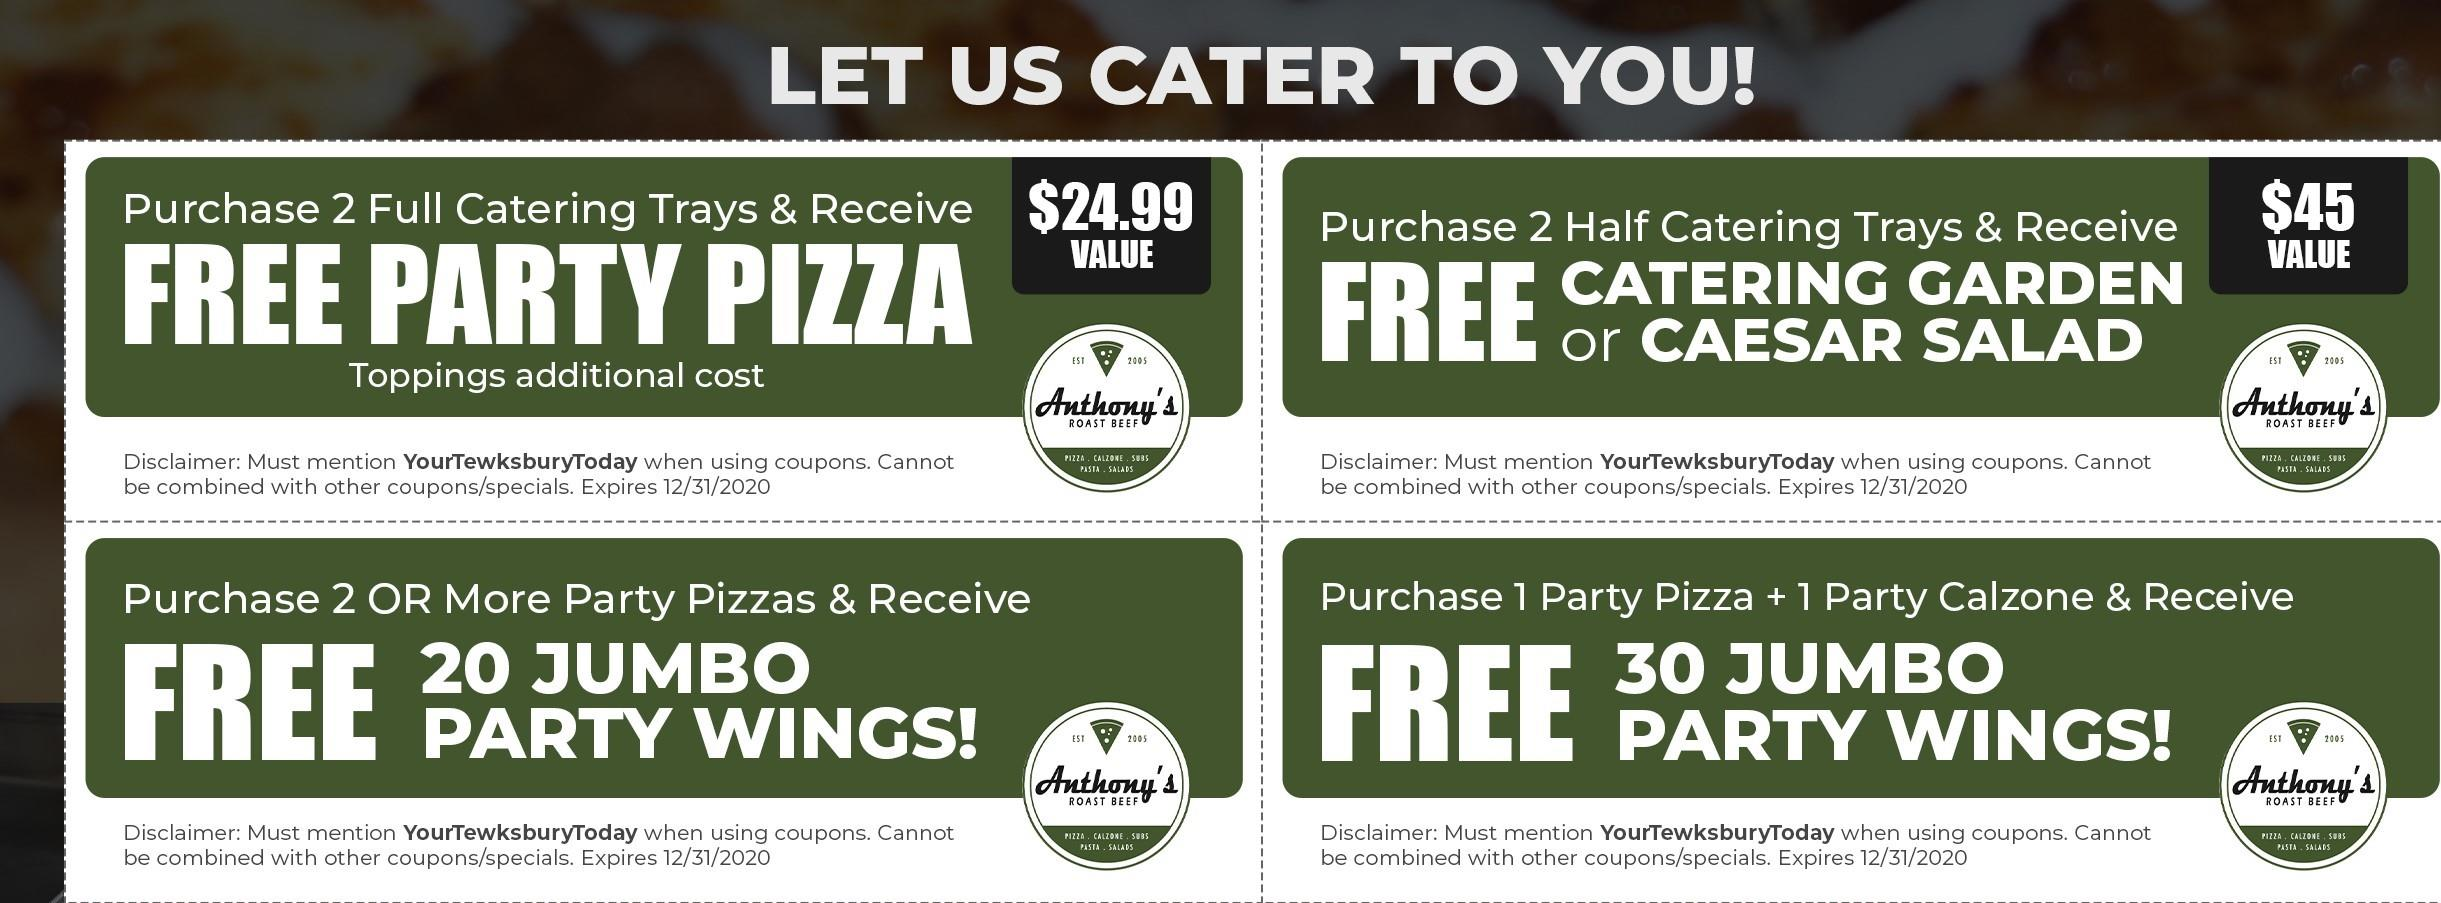 Purchase 2 full catering trays and receive a free party pizza, toppings additonal cost. 24.99 value. Purcahse 2 or more party pizzas and receive free 20 jumbo party wings. Puchase 2 half catering trays and receive a free catering garden salad or caesar salad. Purchase 1 party pizza dn 1 party calzone and receive free 30 jumbo party wings.